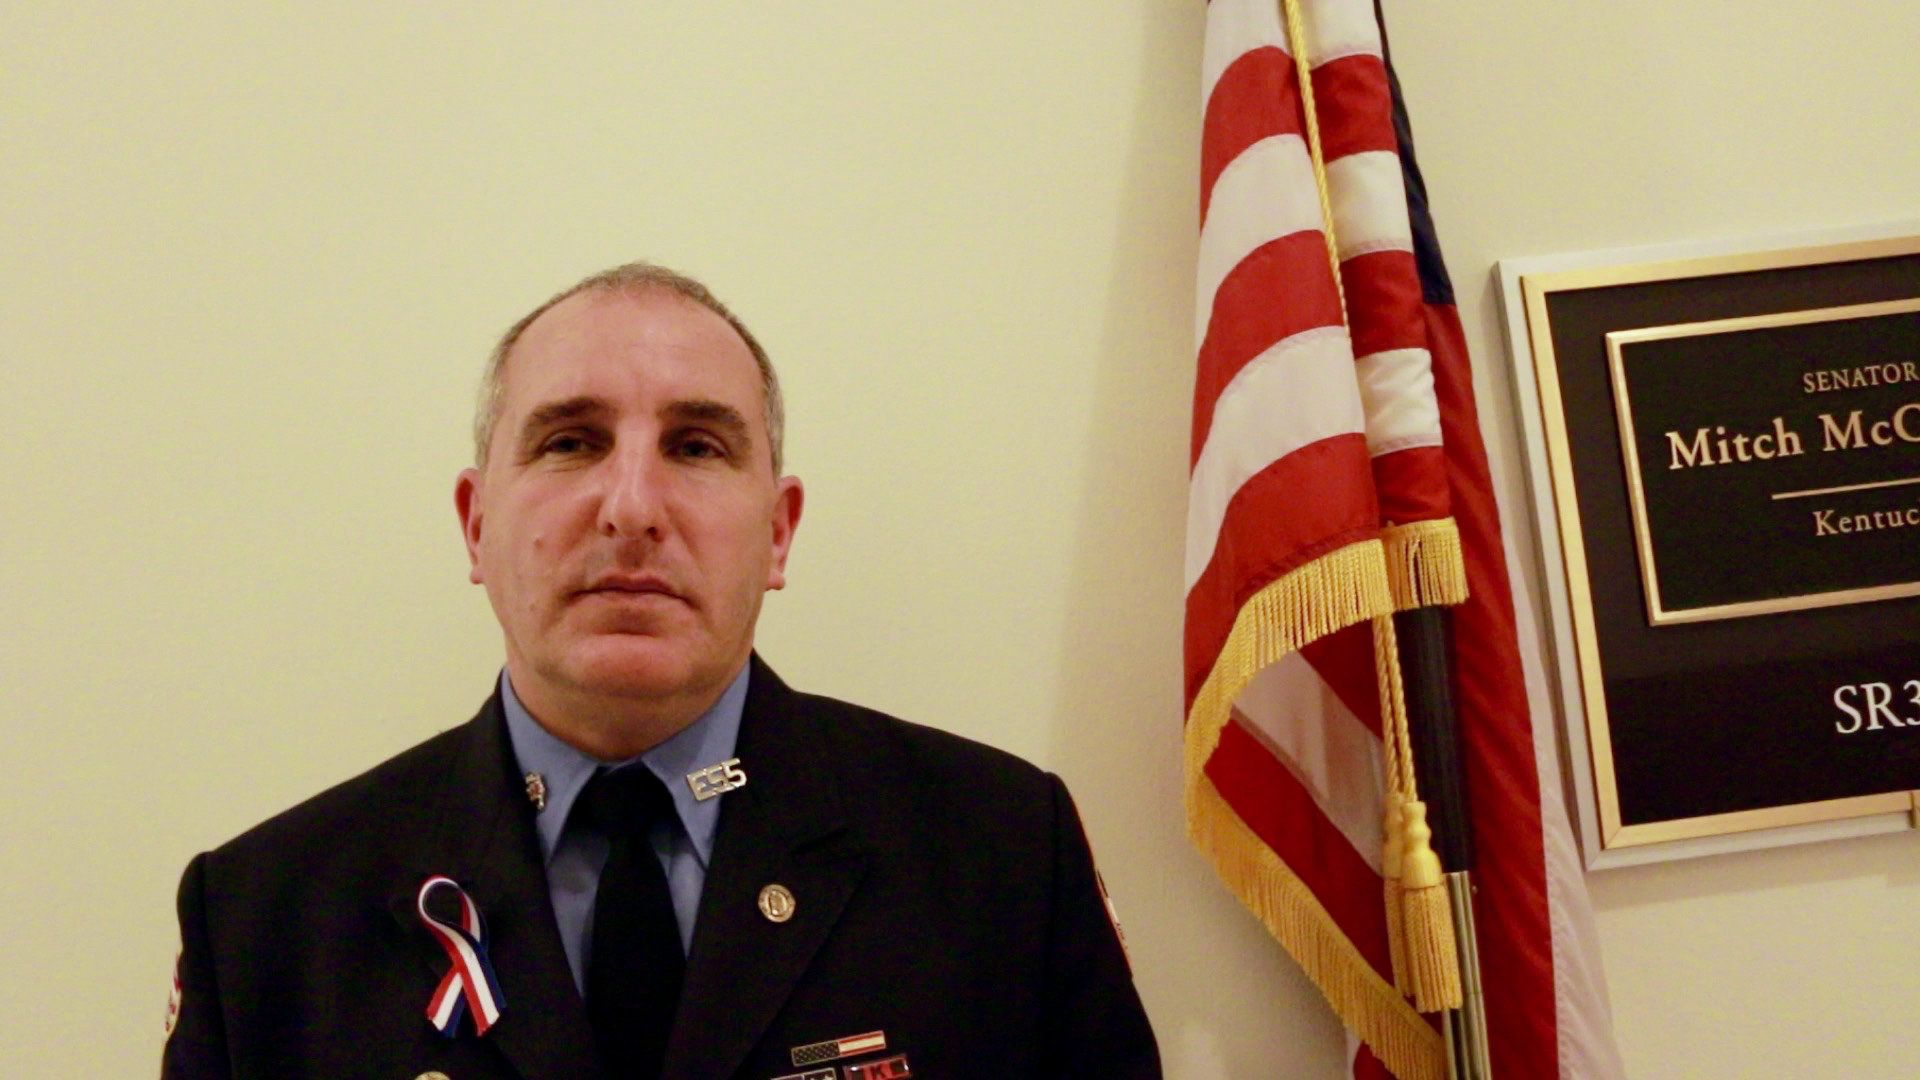 Paul Iannizzotto, a for New York firefighter, visited Senate Majority Leader Mitch McConnell's office with two dozen other 9/11 responders.